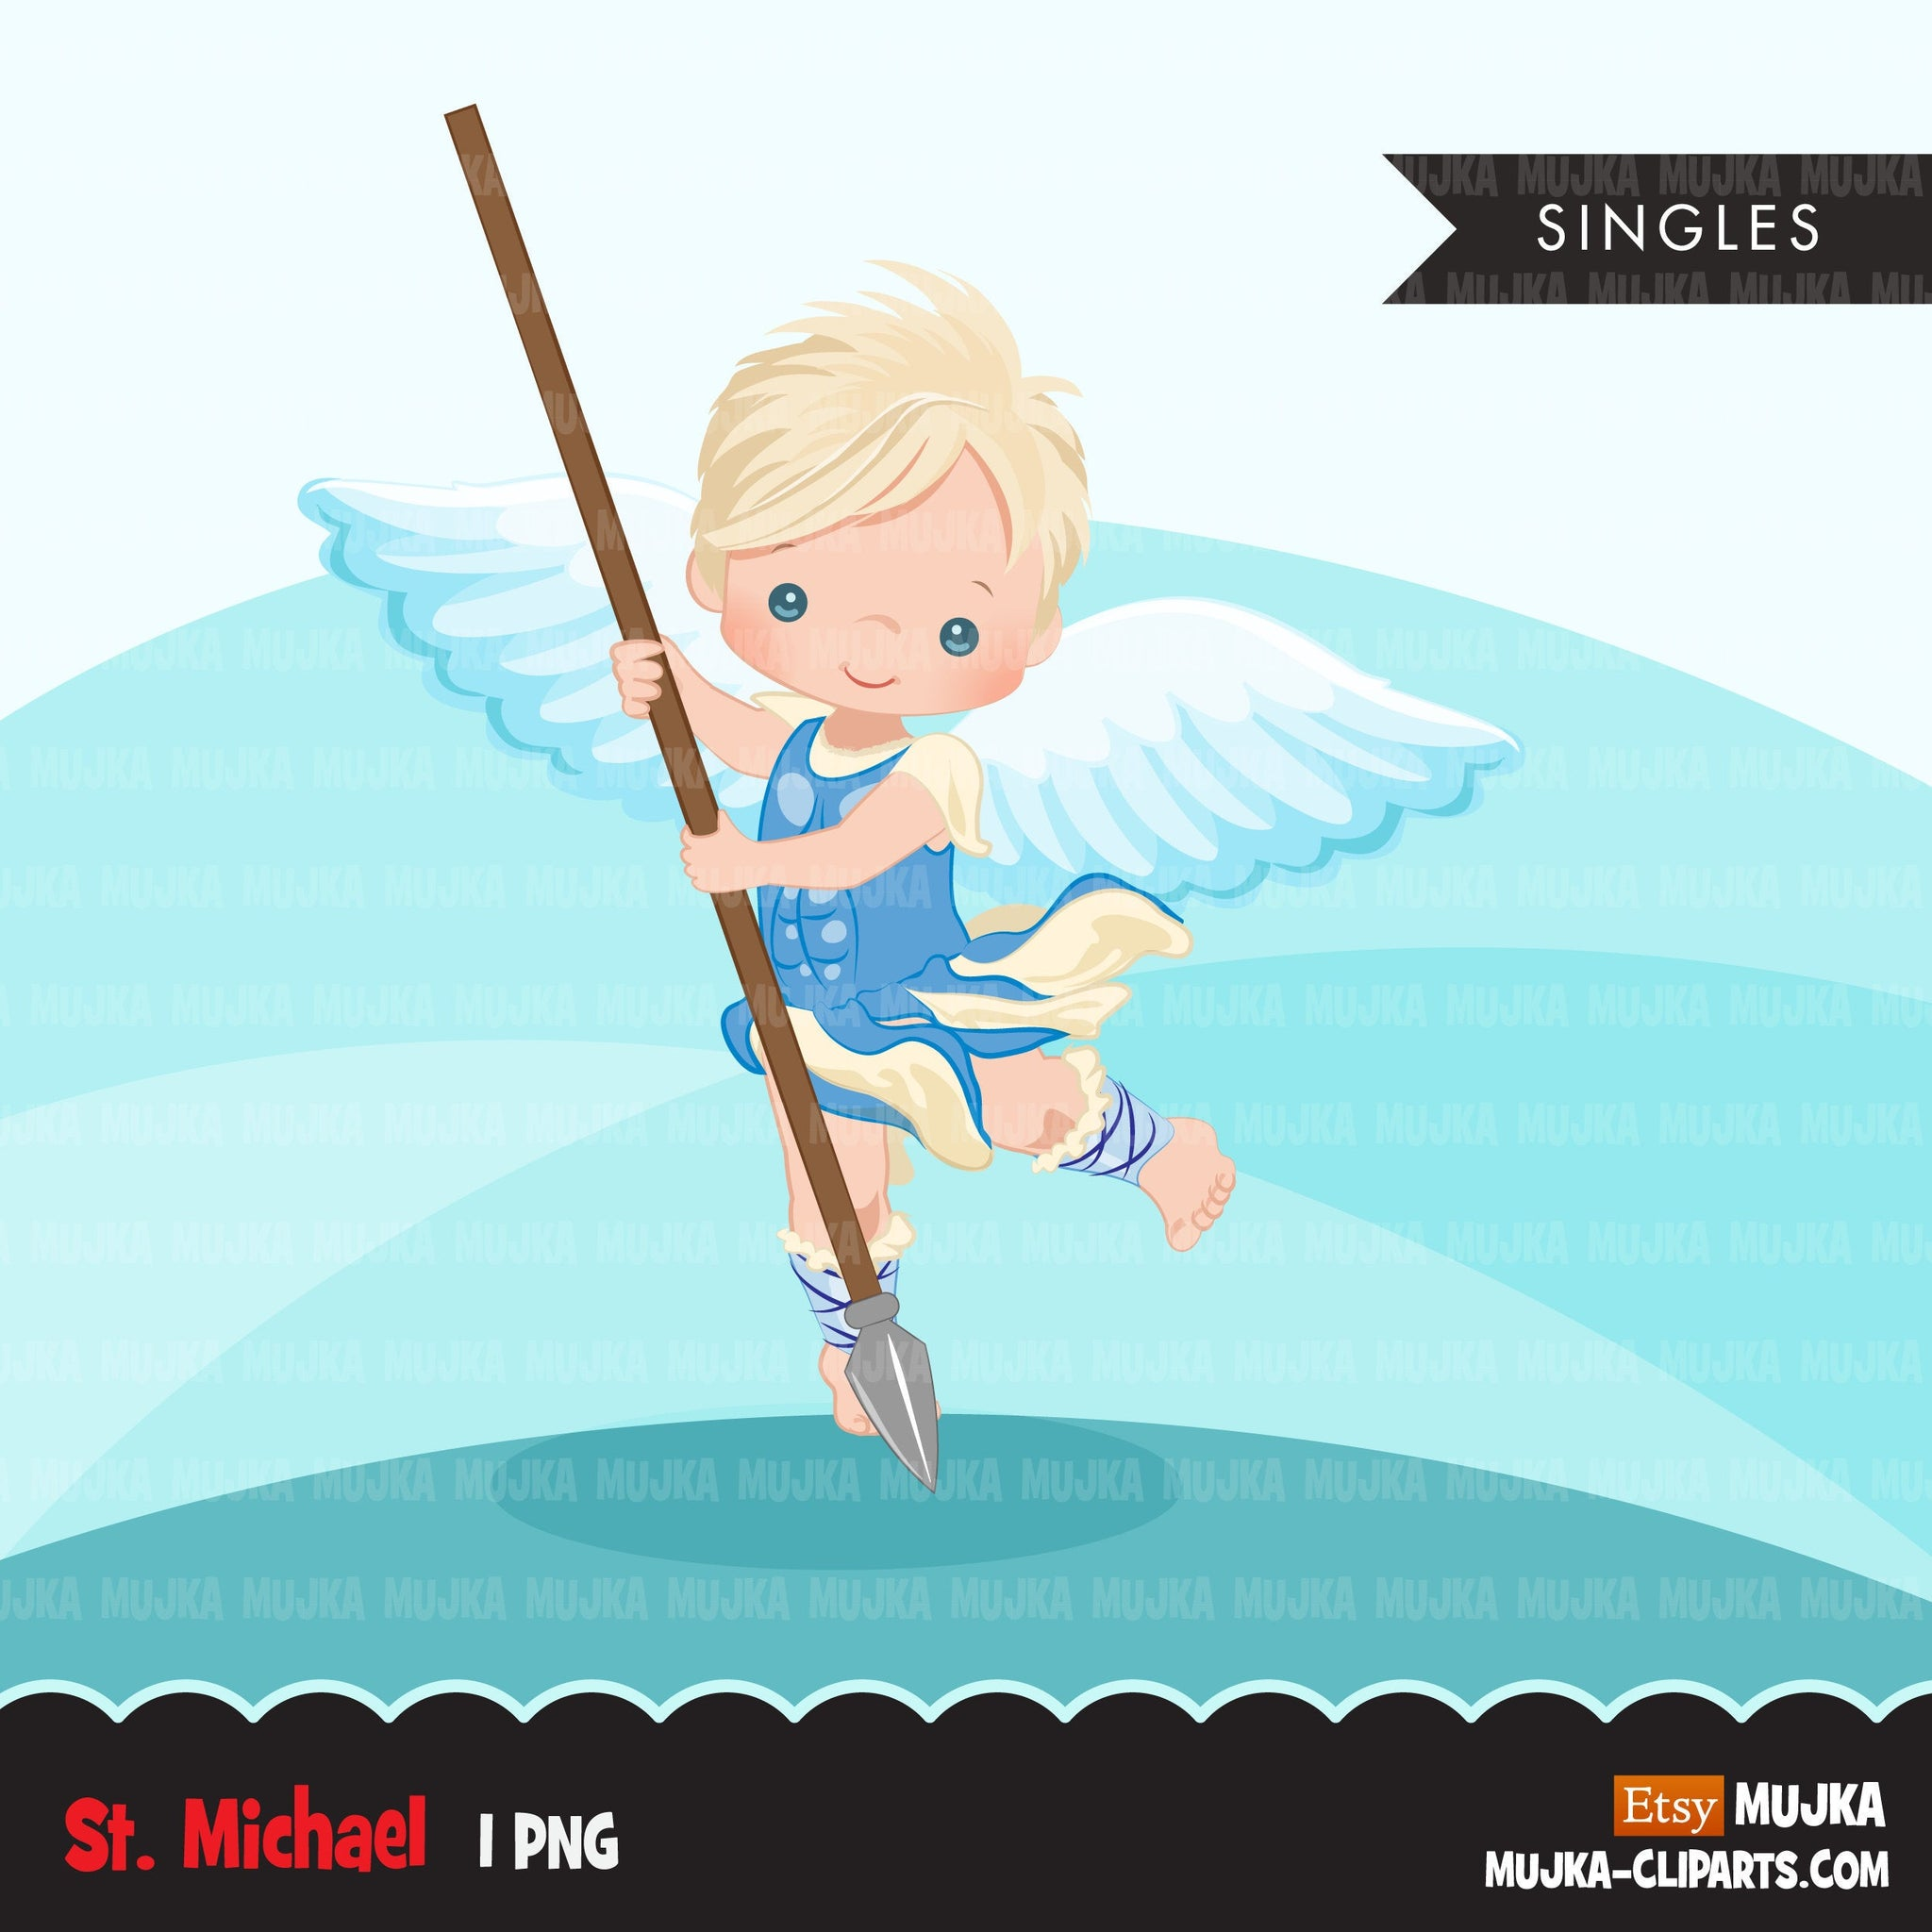 Saint Michael clipart, religious sublimation designs digital download, christian graphics, archangel designs, Christian png files for cricut